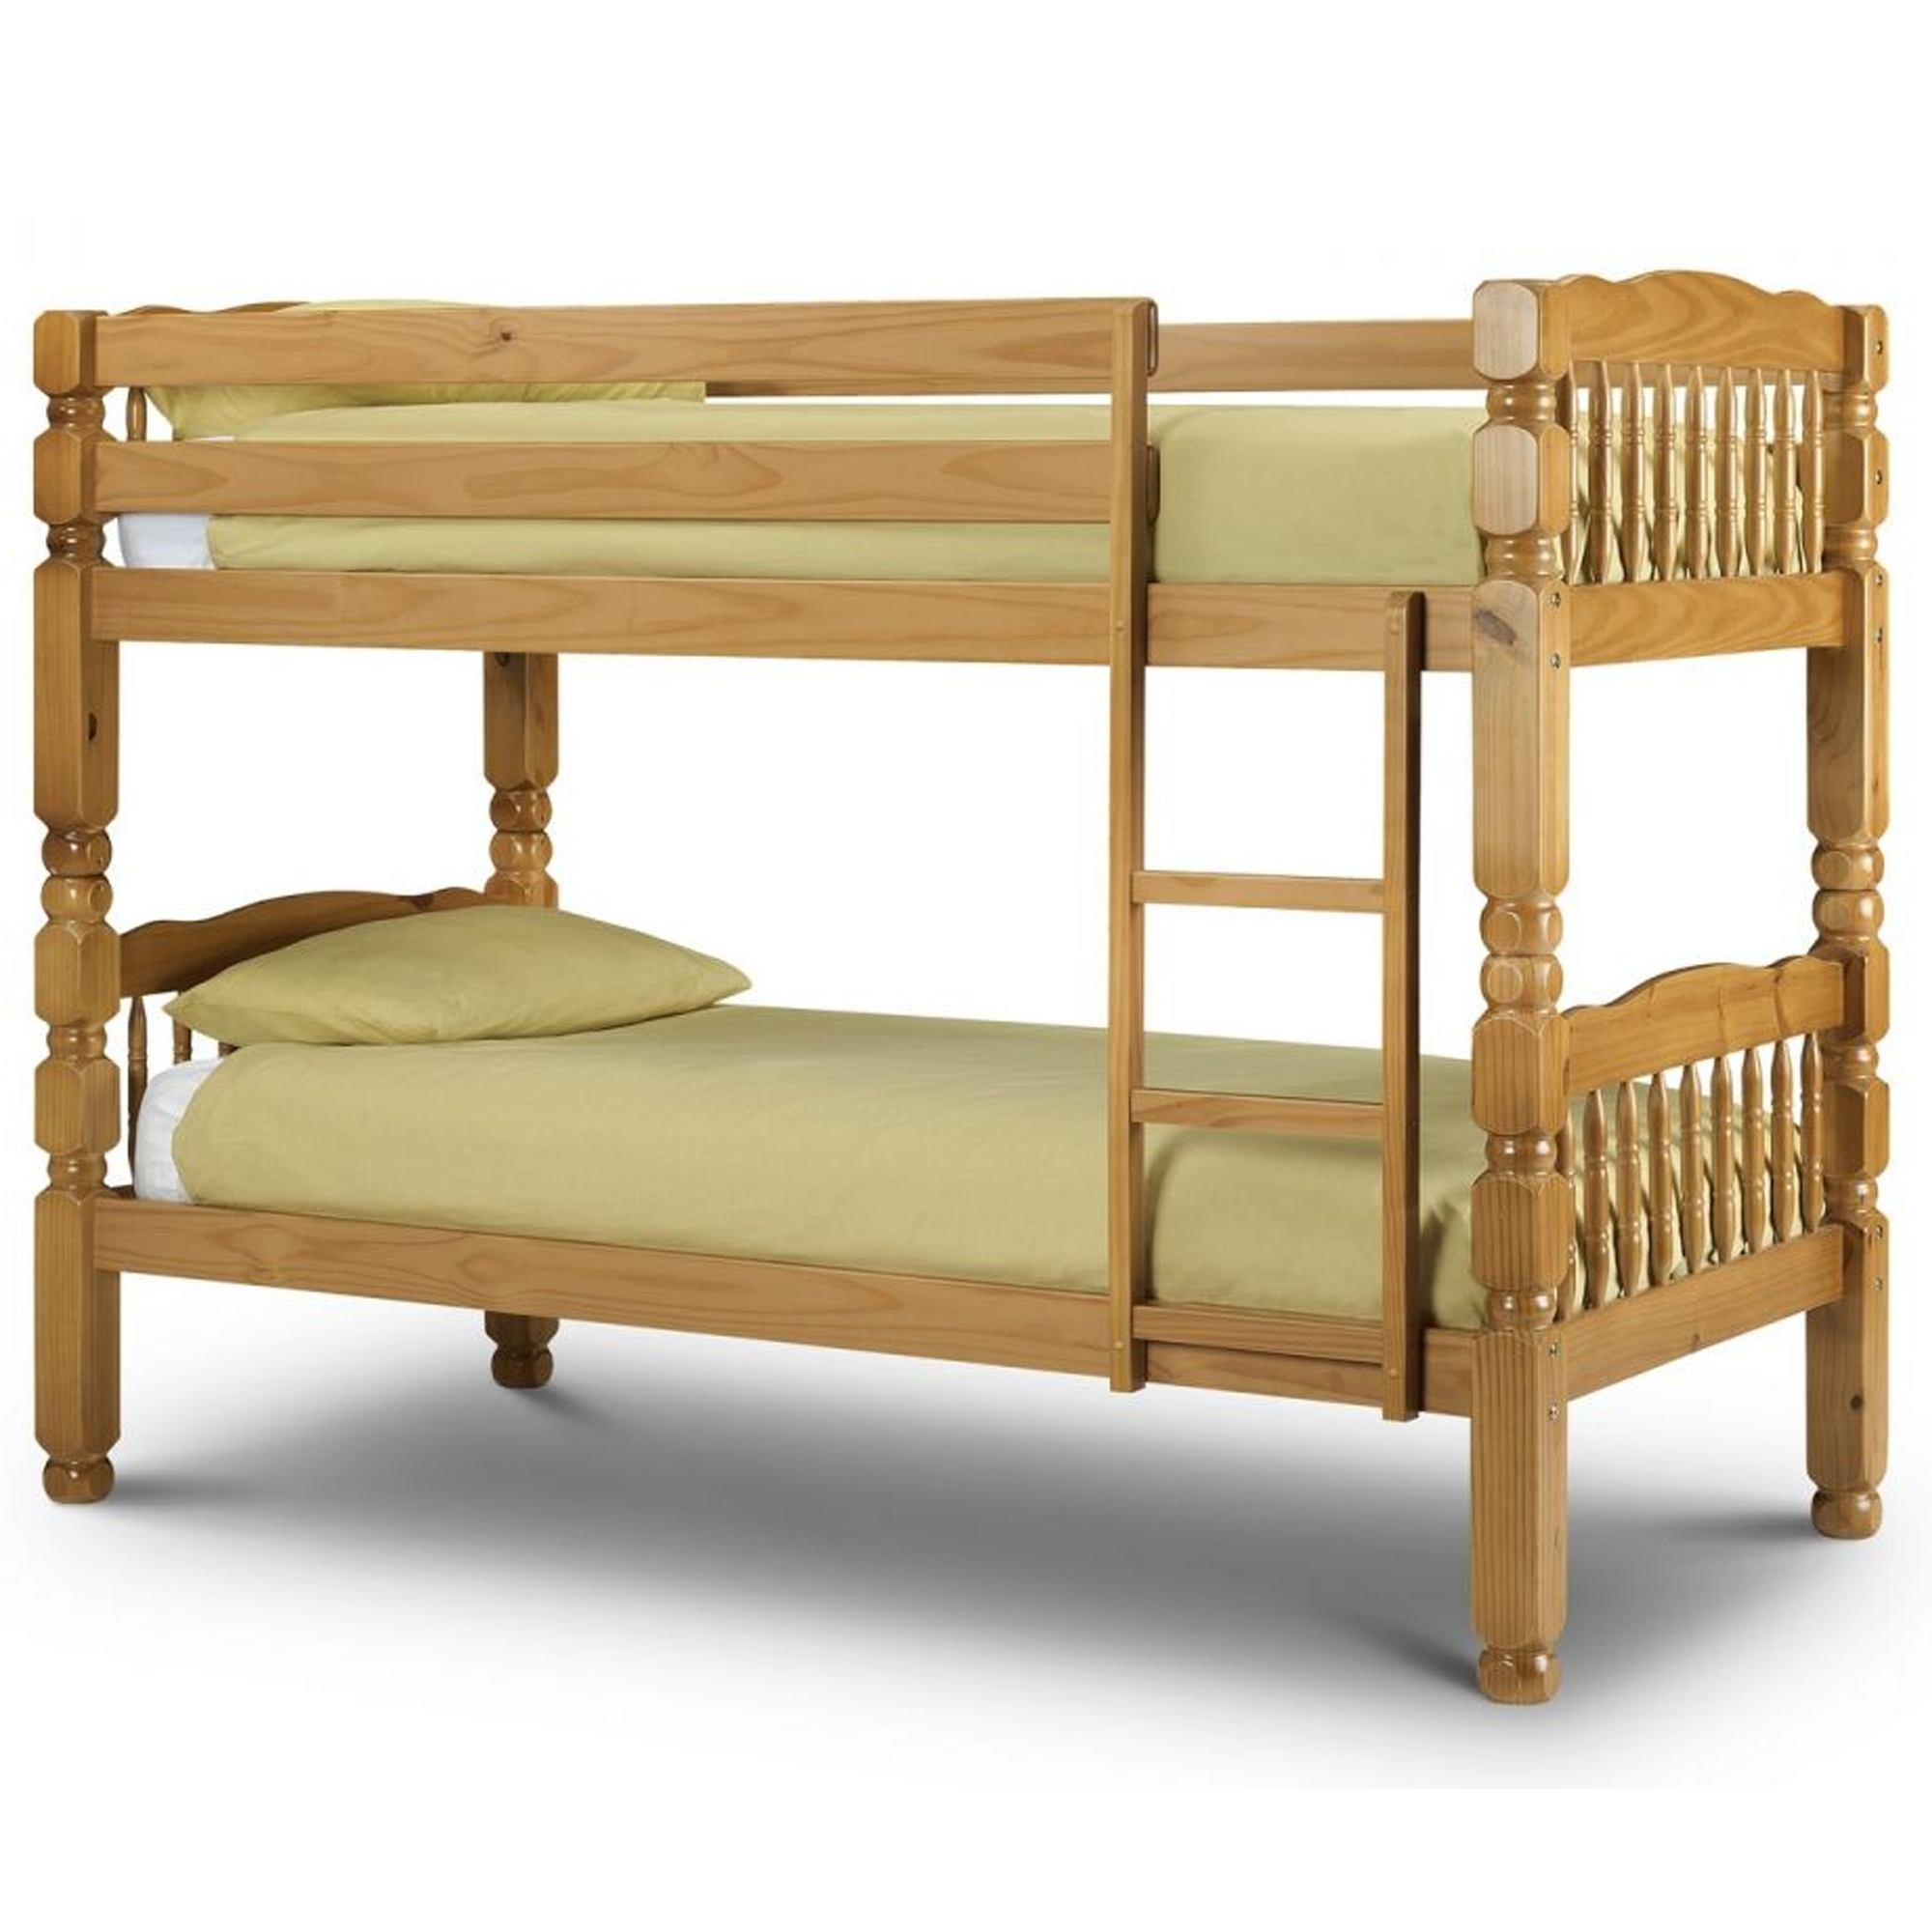 Chunky Bunk Bed Modern Contemporary Bunk Beds Homesdirect365